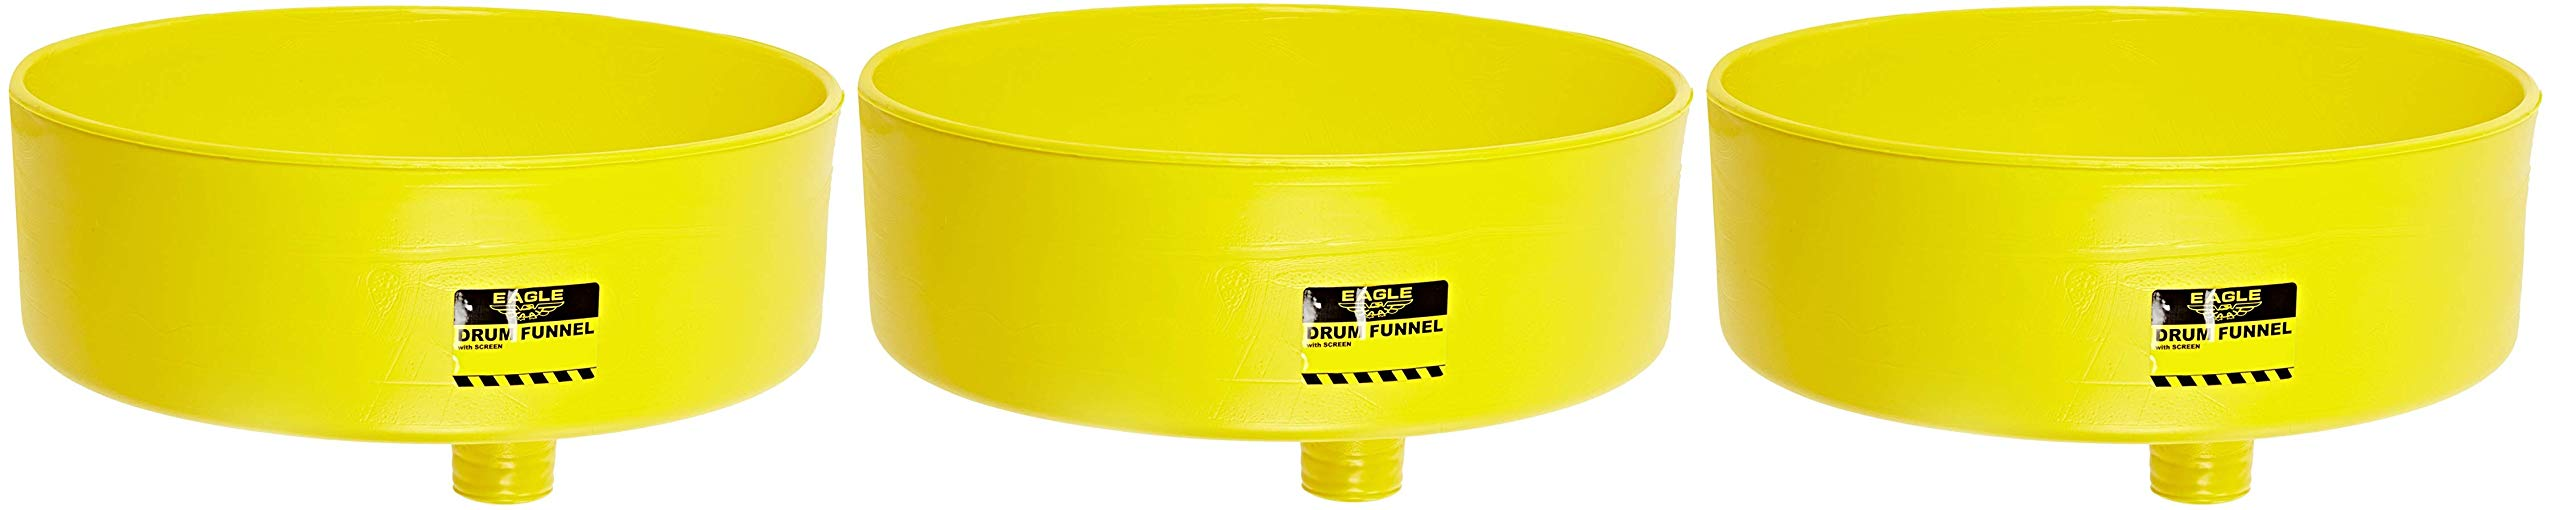 Eagle 1662 Drum Funnel with Brass Screen, 18'' Diameter x 7'' Height (Pack of 3)